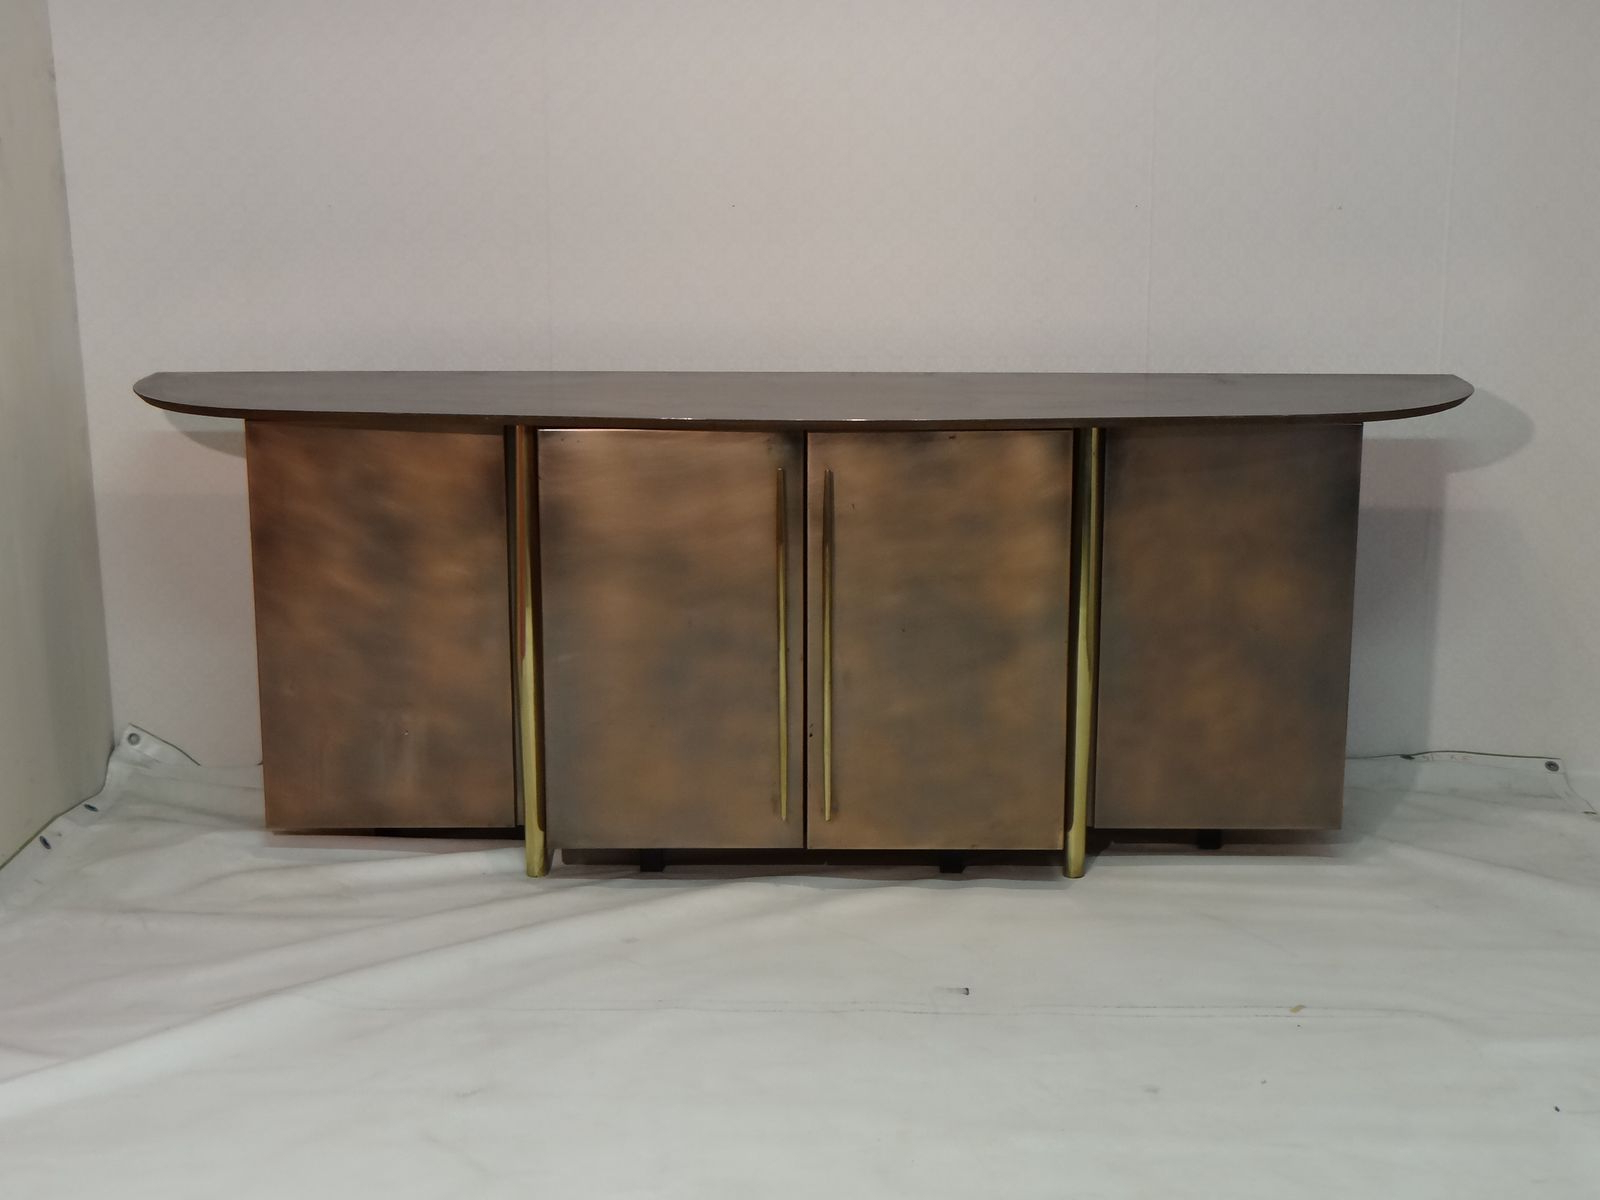 Newest Aged Brass Sideboards Regarding Vintage Brass Sideboard From Belgo Chrom For Sale At Pamono (Gallery 2 of 20)